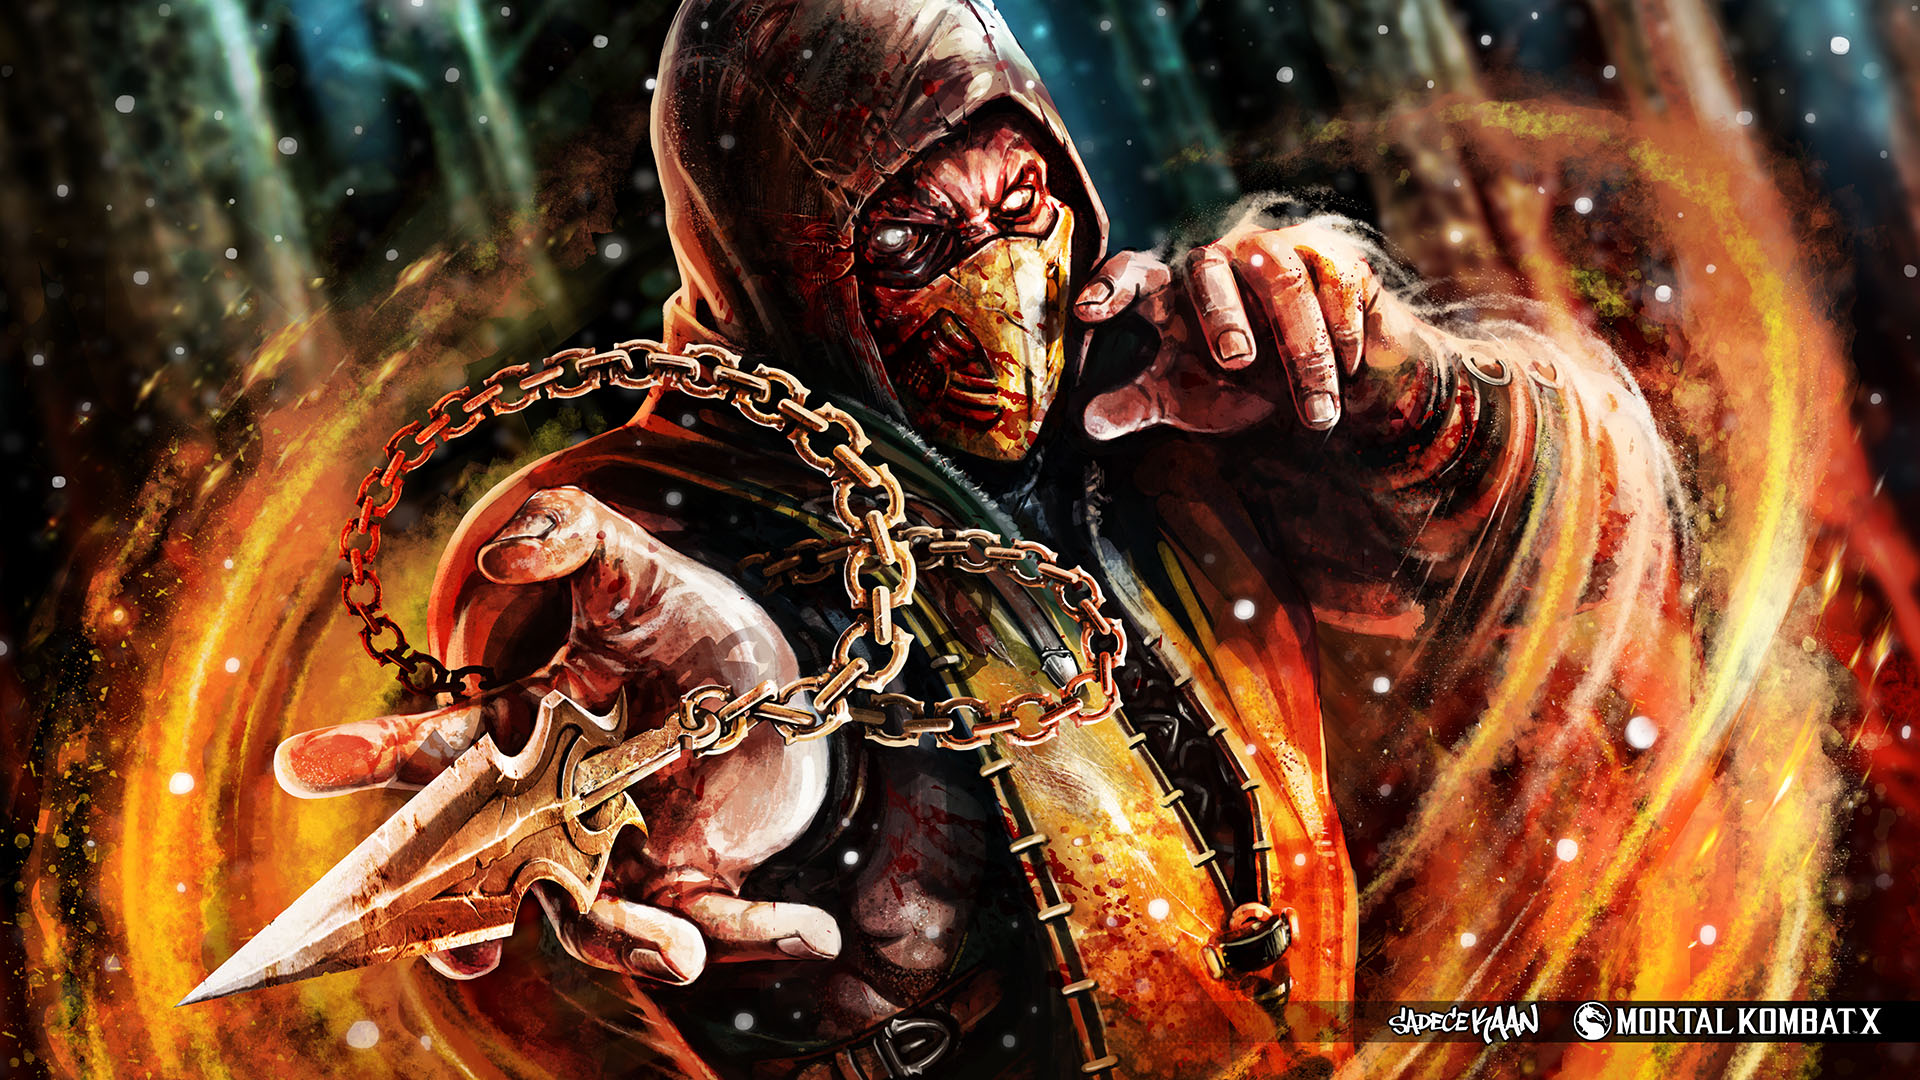 Mortal Kombat X scorpion artwork